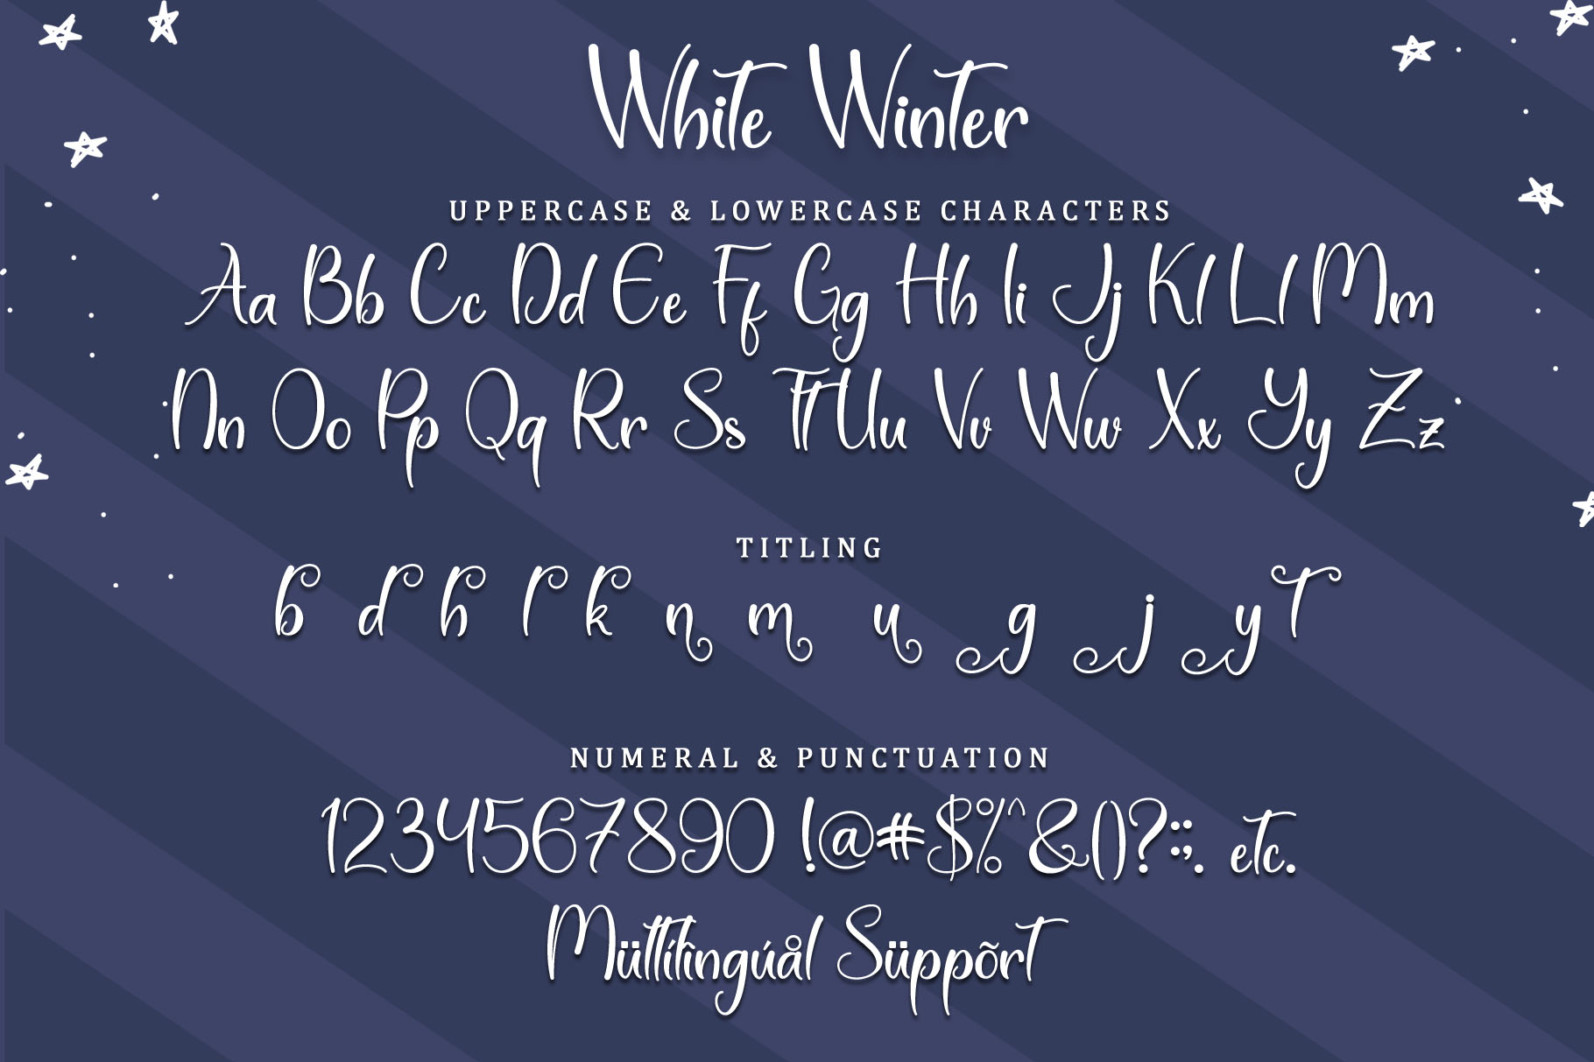 Winter Winter - PREVIEW 6 8 -